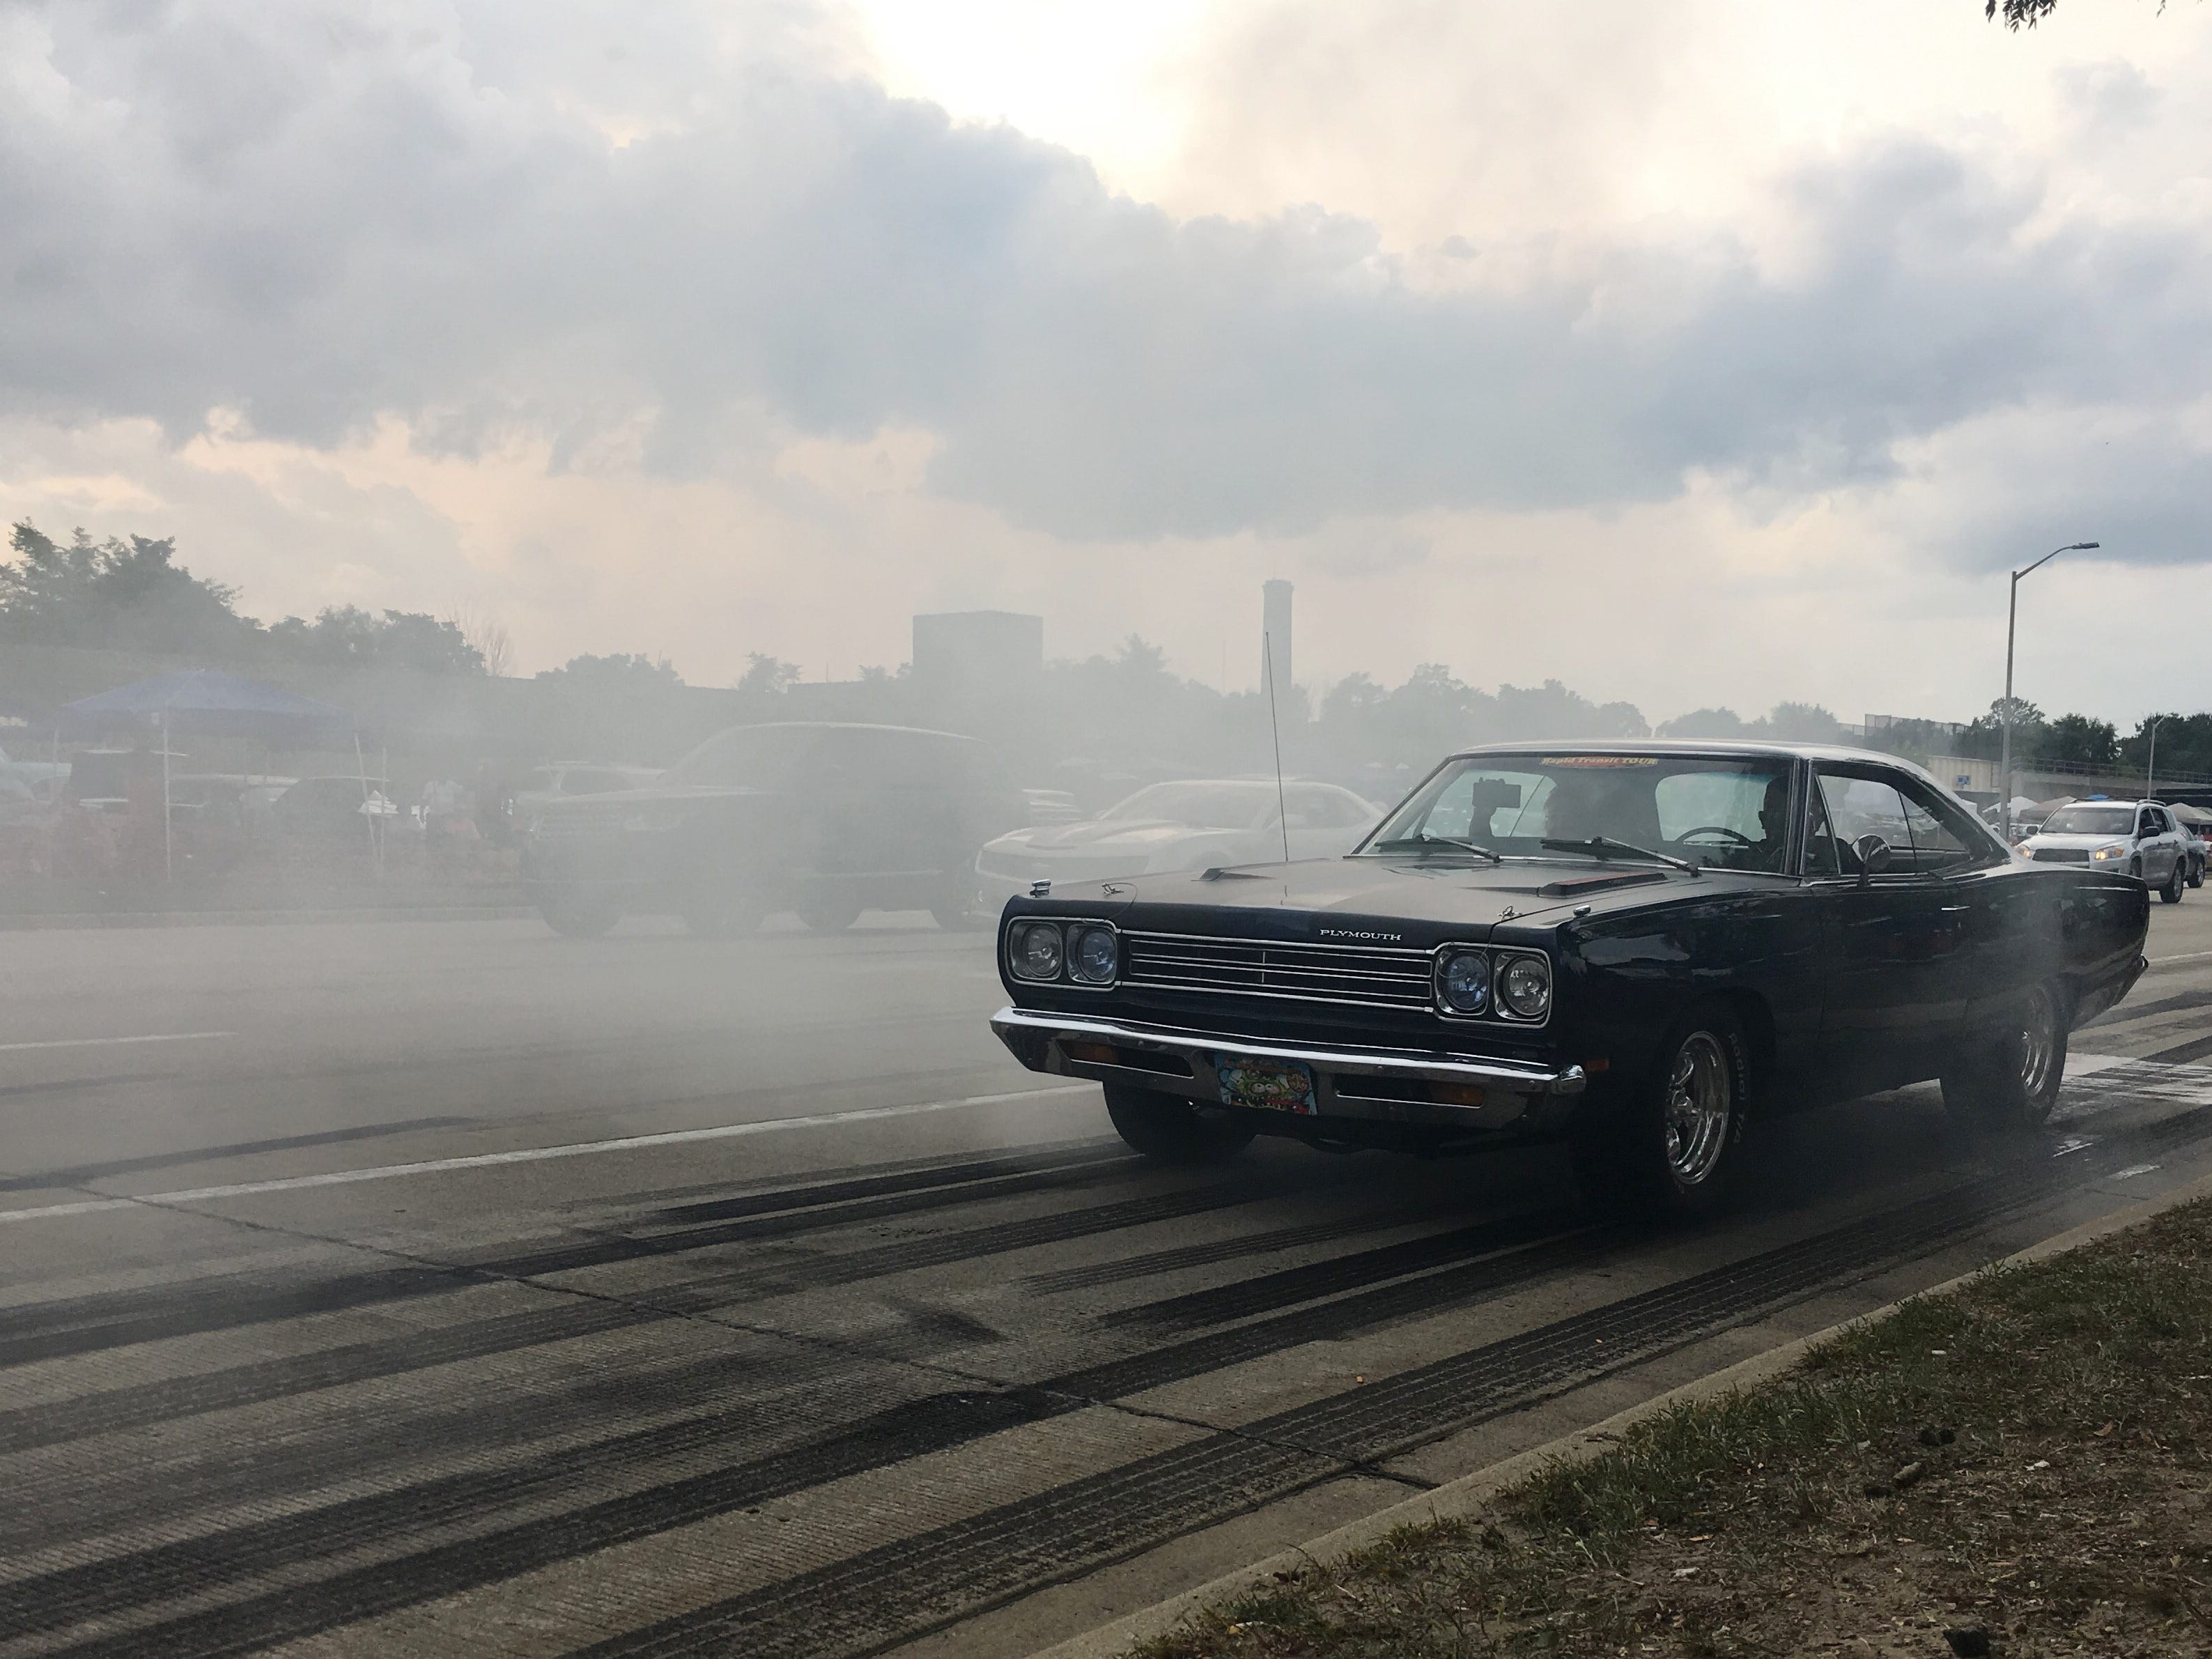 A Plymouth hot rod approaches through the smoke of another car's burnout on Woodward in Pontiac during the Woodward Dream Cruise in Pontiac, Michigan on Saturday, August 18, 2018.